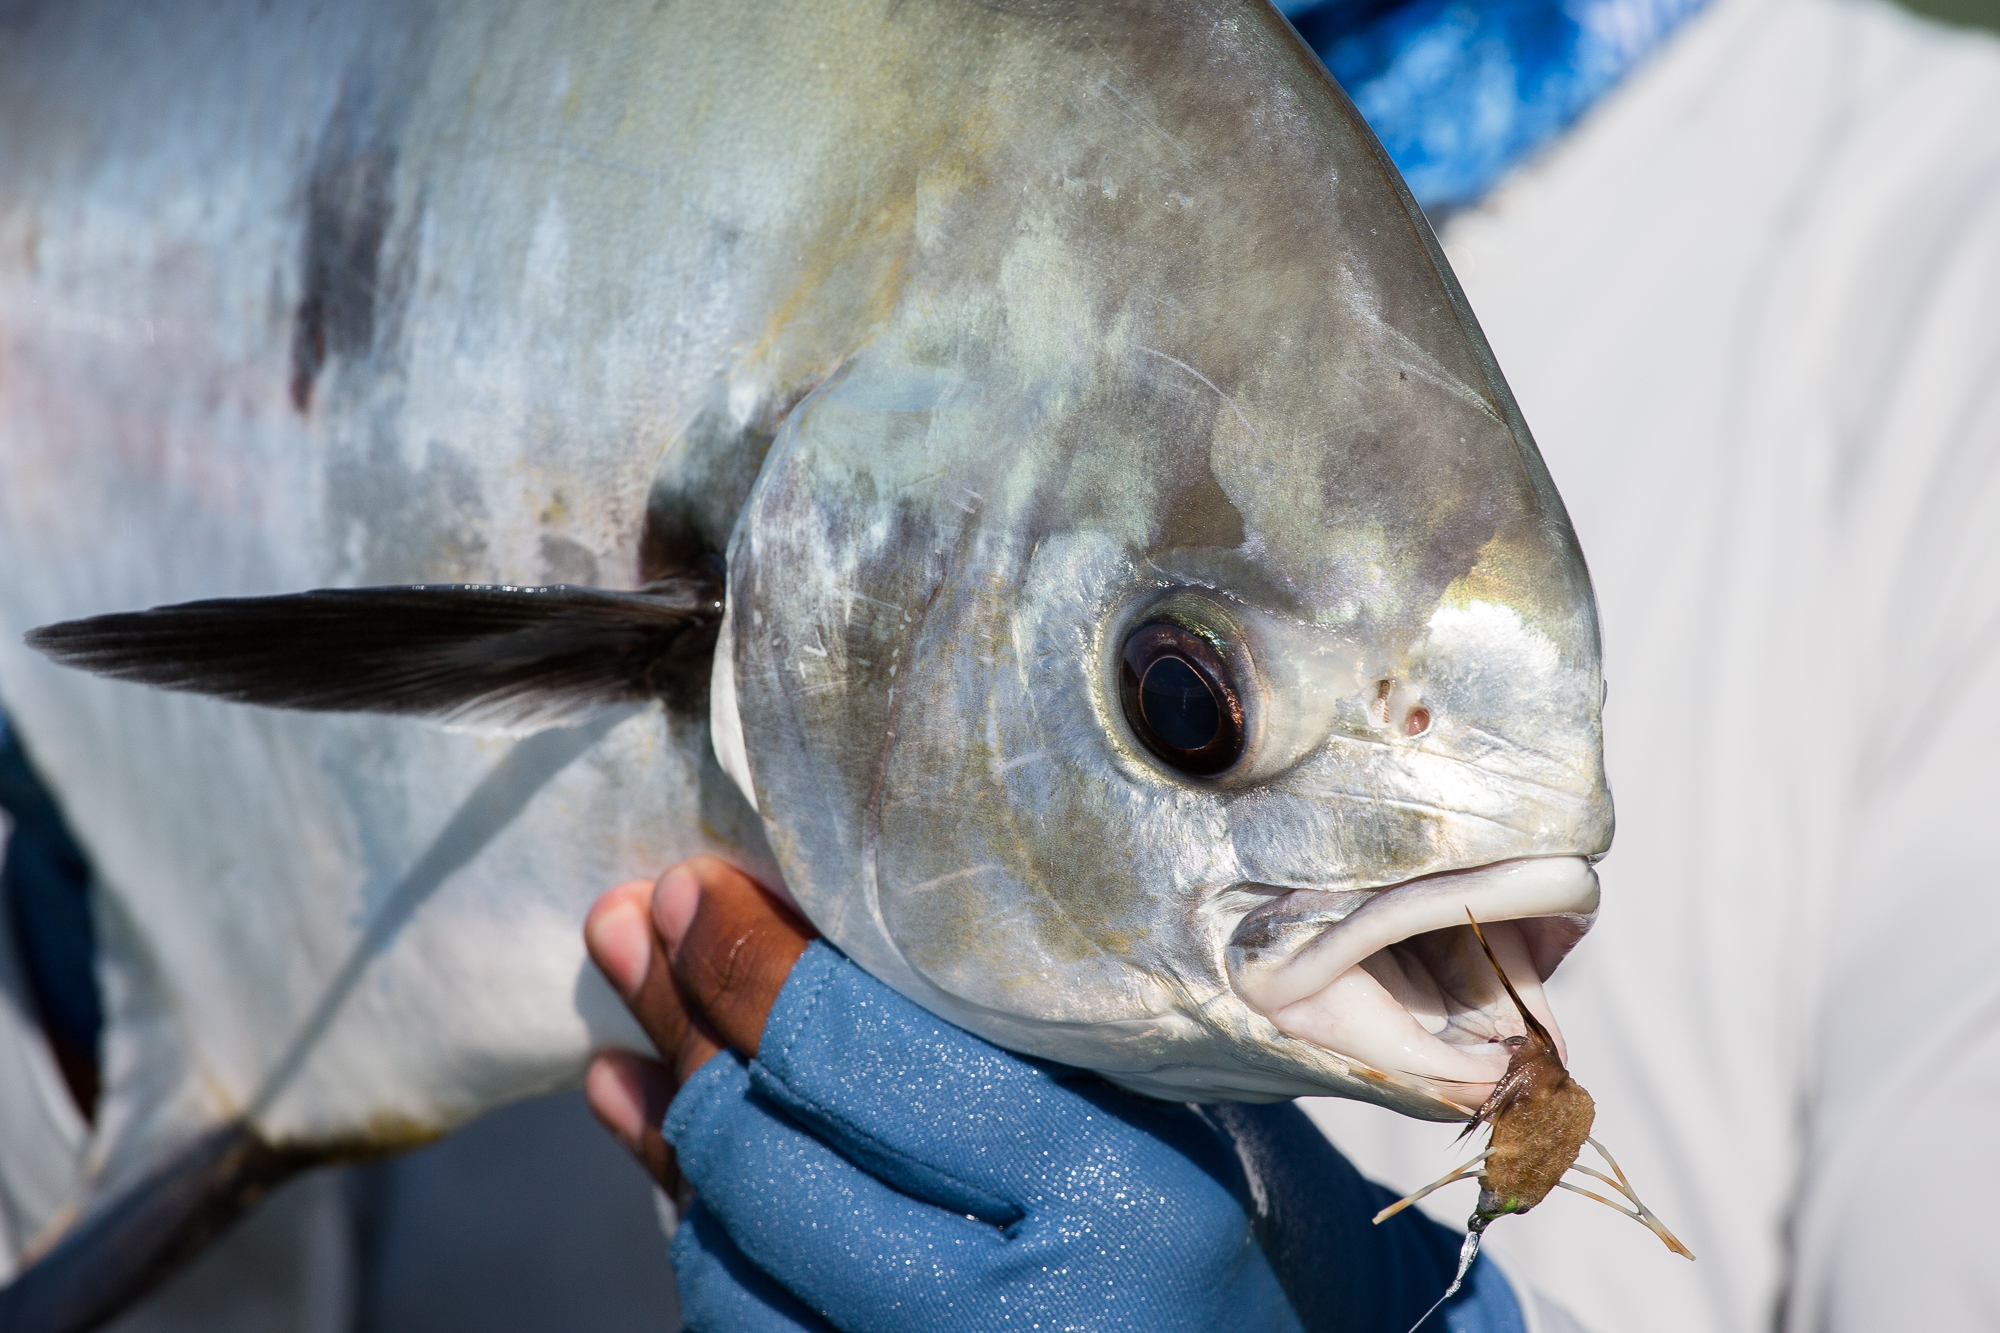 (3/3) When the conditions on the bay are typical, shots at permit can be plentiful. With the early morning hex broken by a successful foot chase, the shots keep coming, a mere fraction of which are properly taken advantage of. In all, four permit find their way to the boat for tagging, with shots at many more blown along the way (photo: Chad Shmukler).